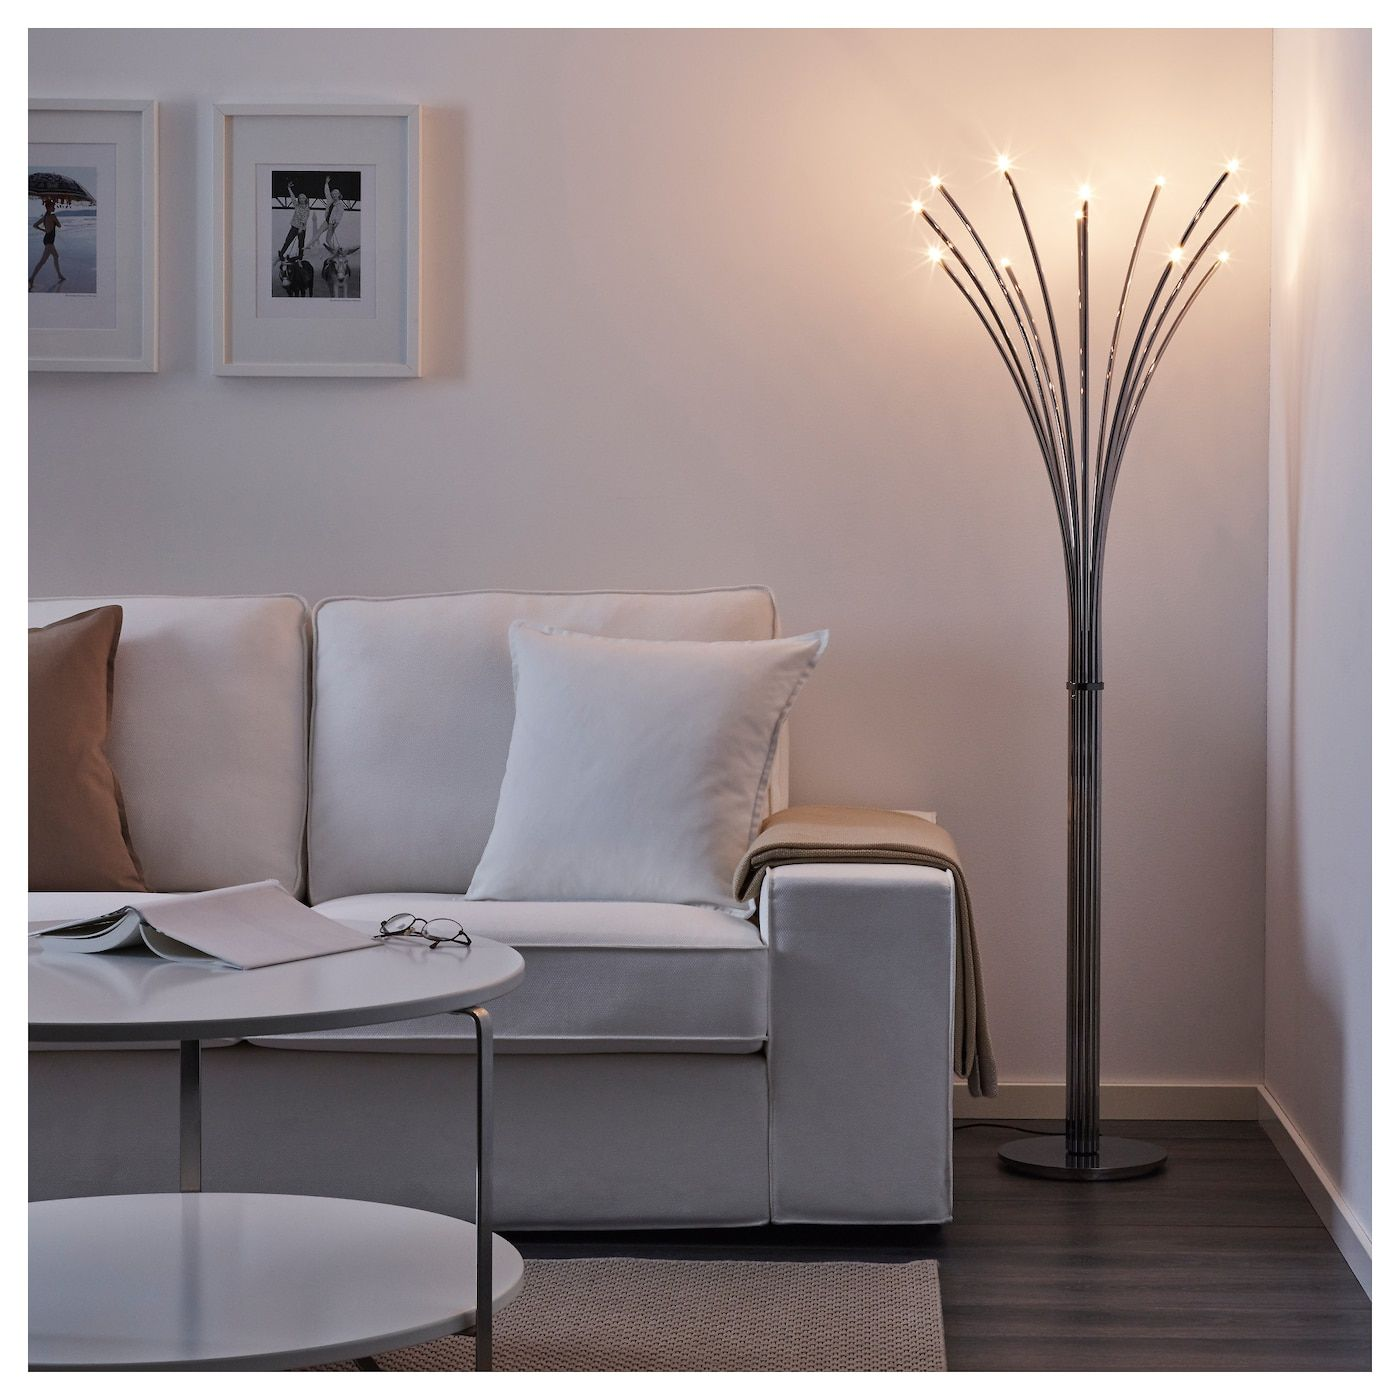 Hovnas Floor Lamp Chrome Plated Chrome Plated Black Ikea Floor Lamps Living Room Ikea Floor Lamp Lamps Living Room